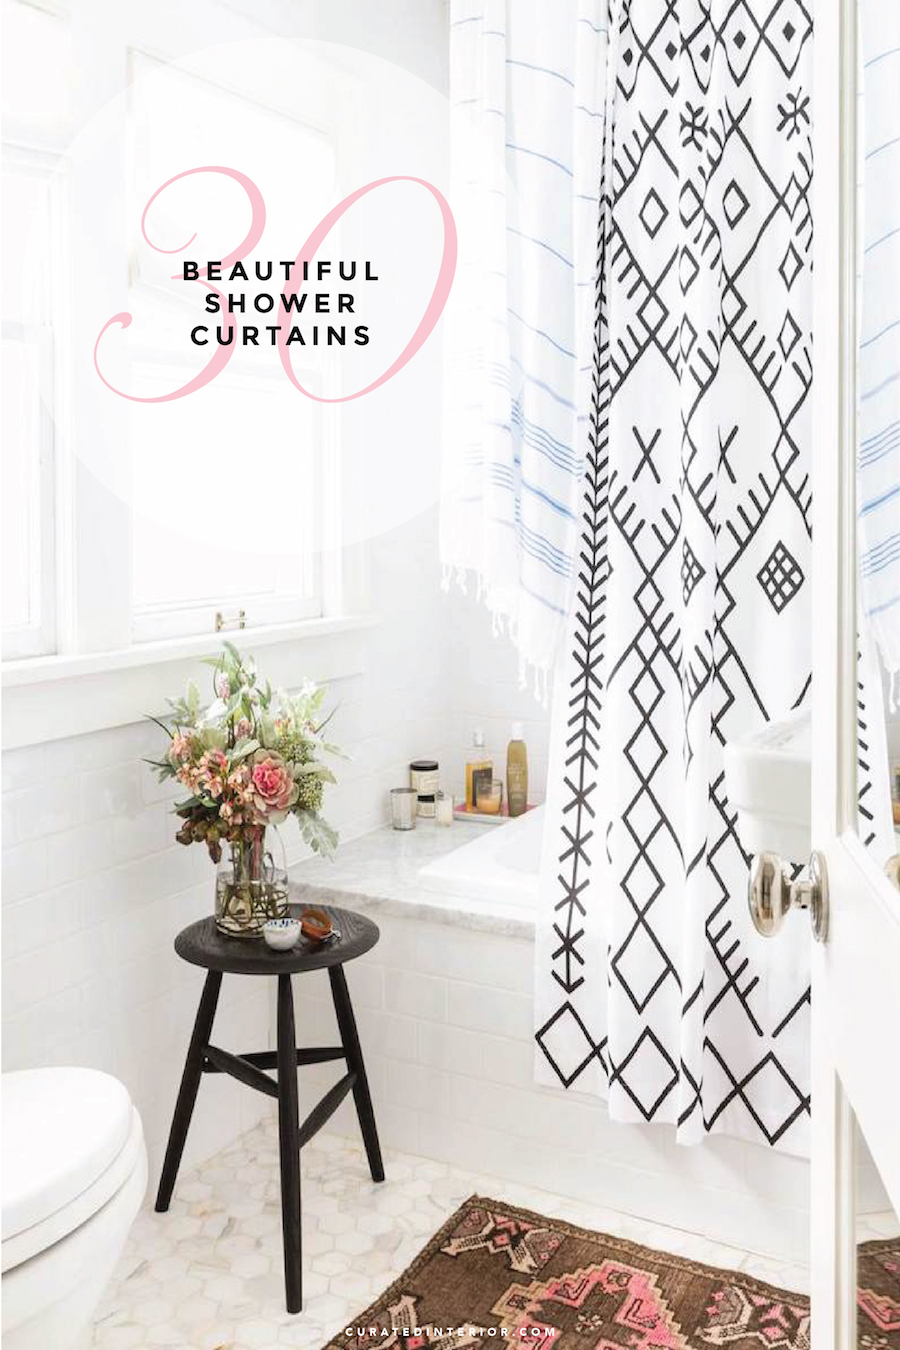 Shower Curtains We Love